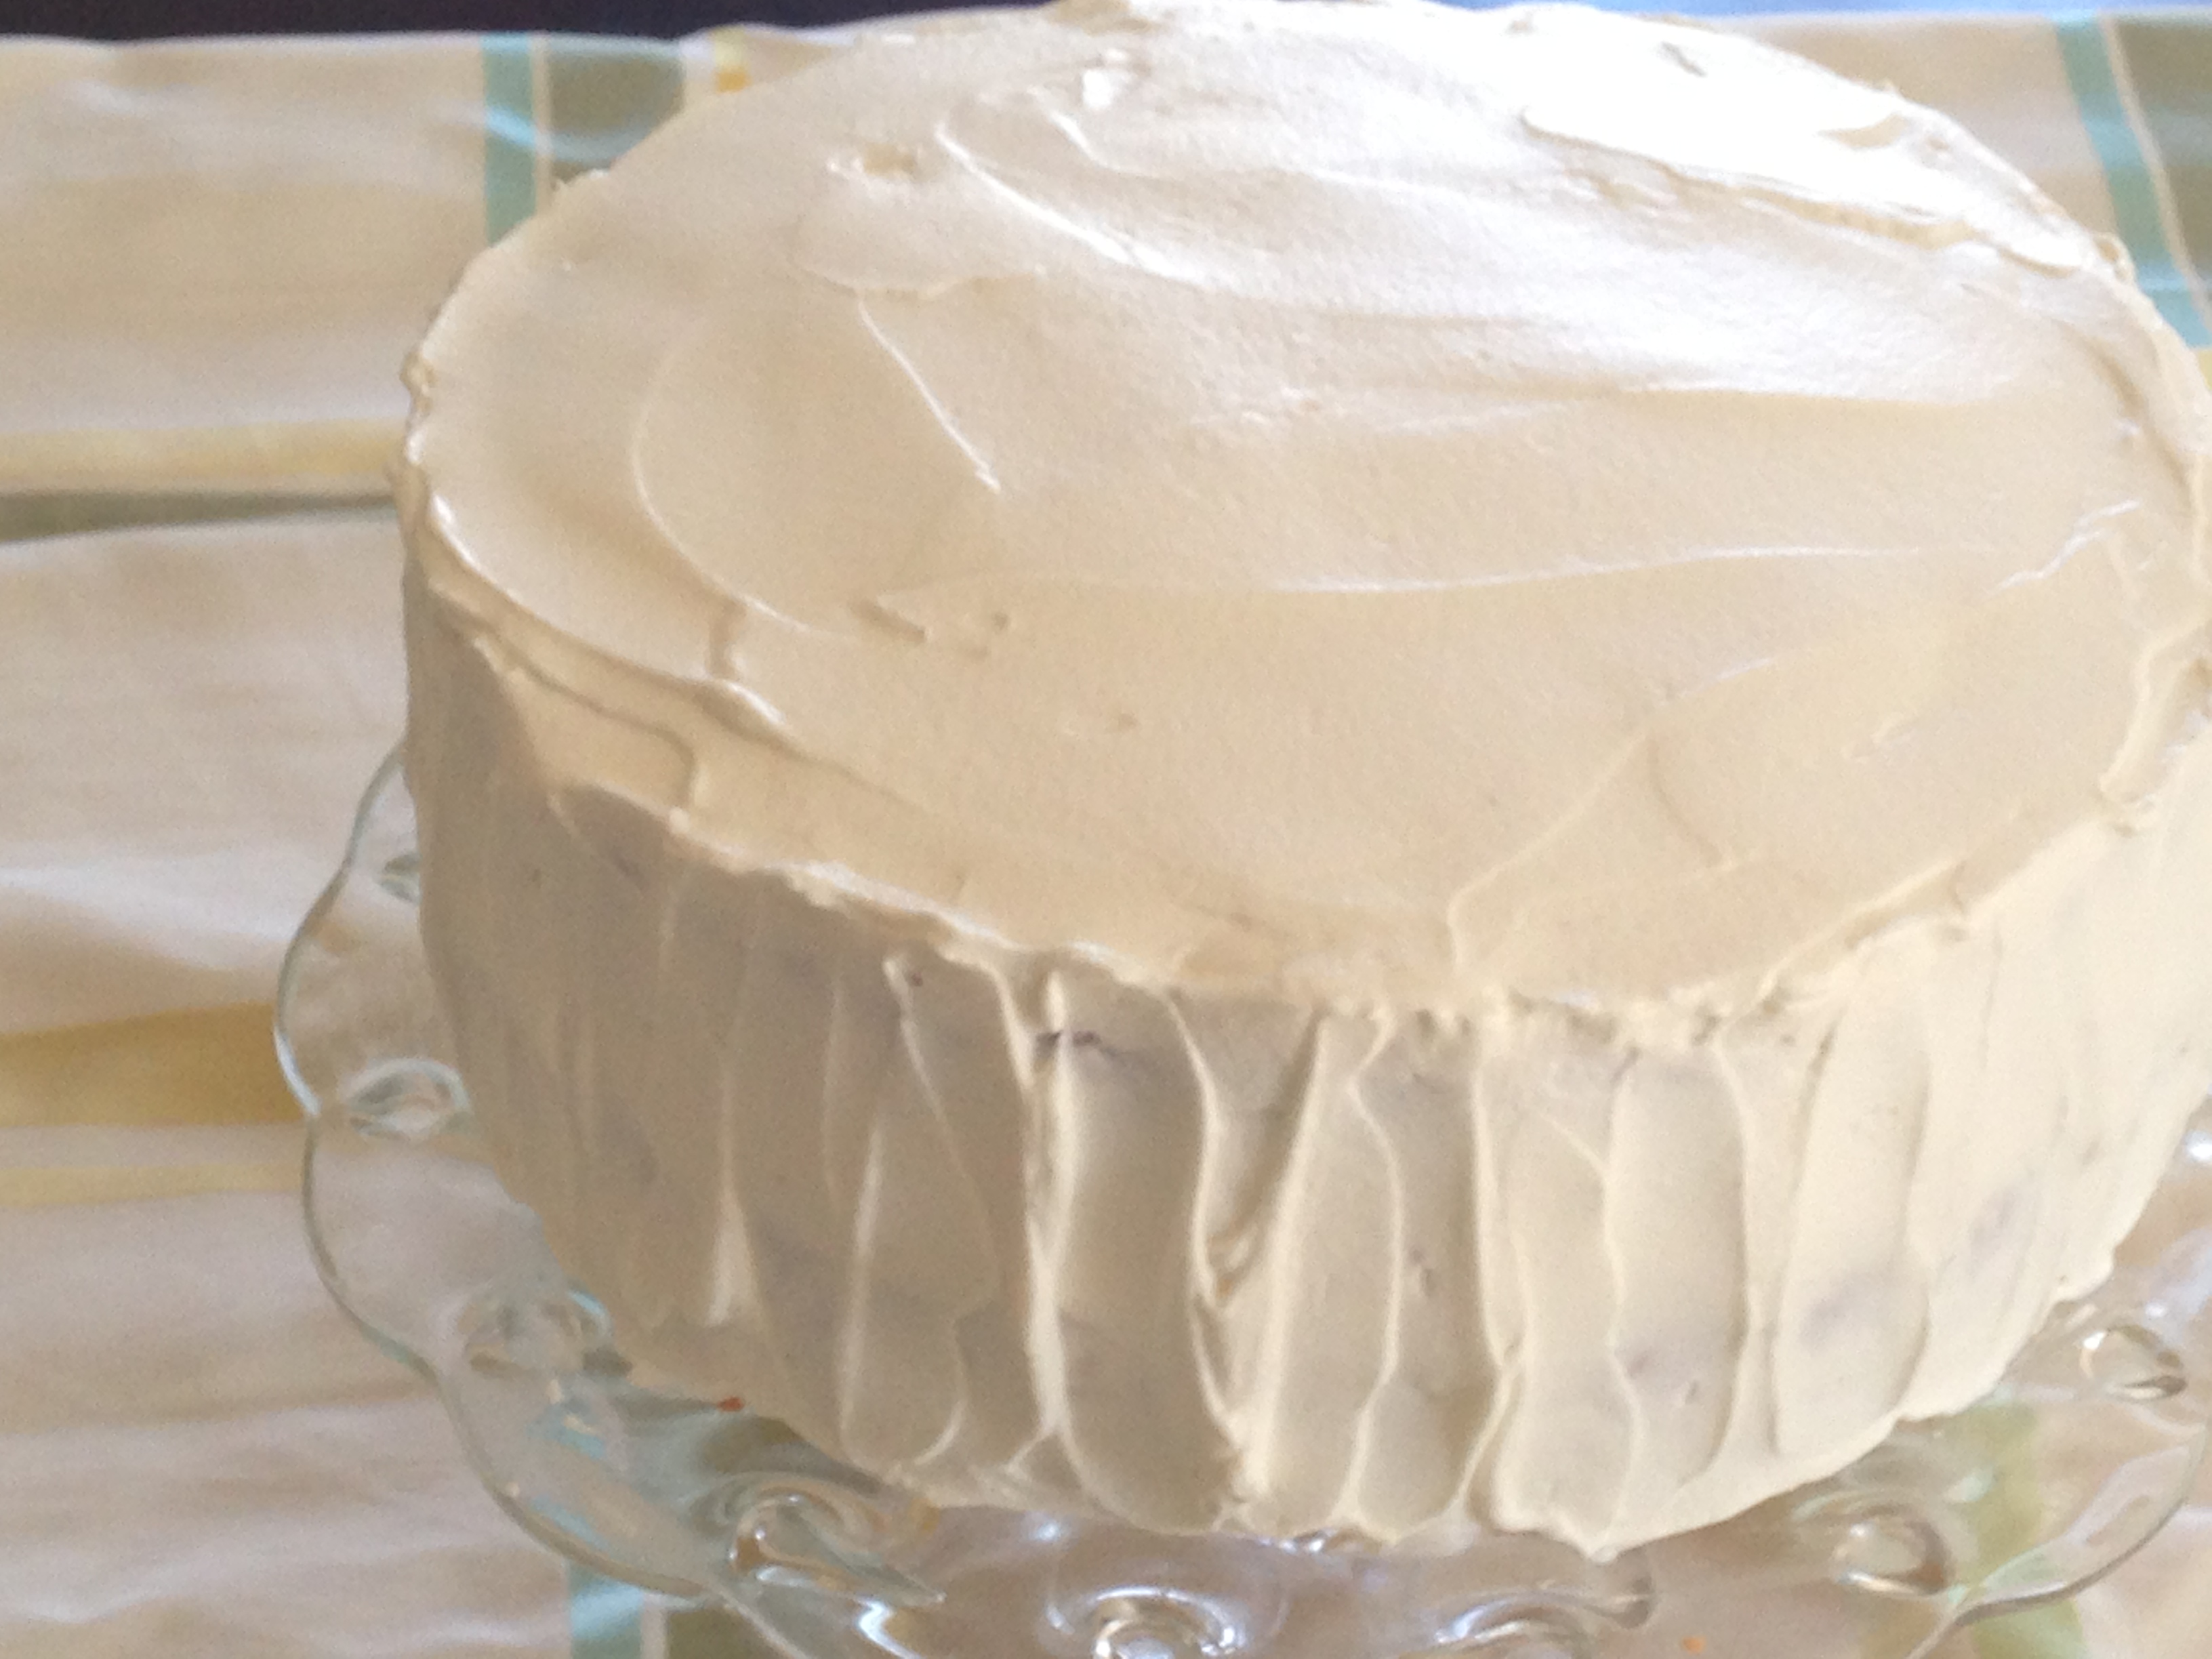 Images Of Cake With Icing : whipped cream frosting apuginthekitchen